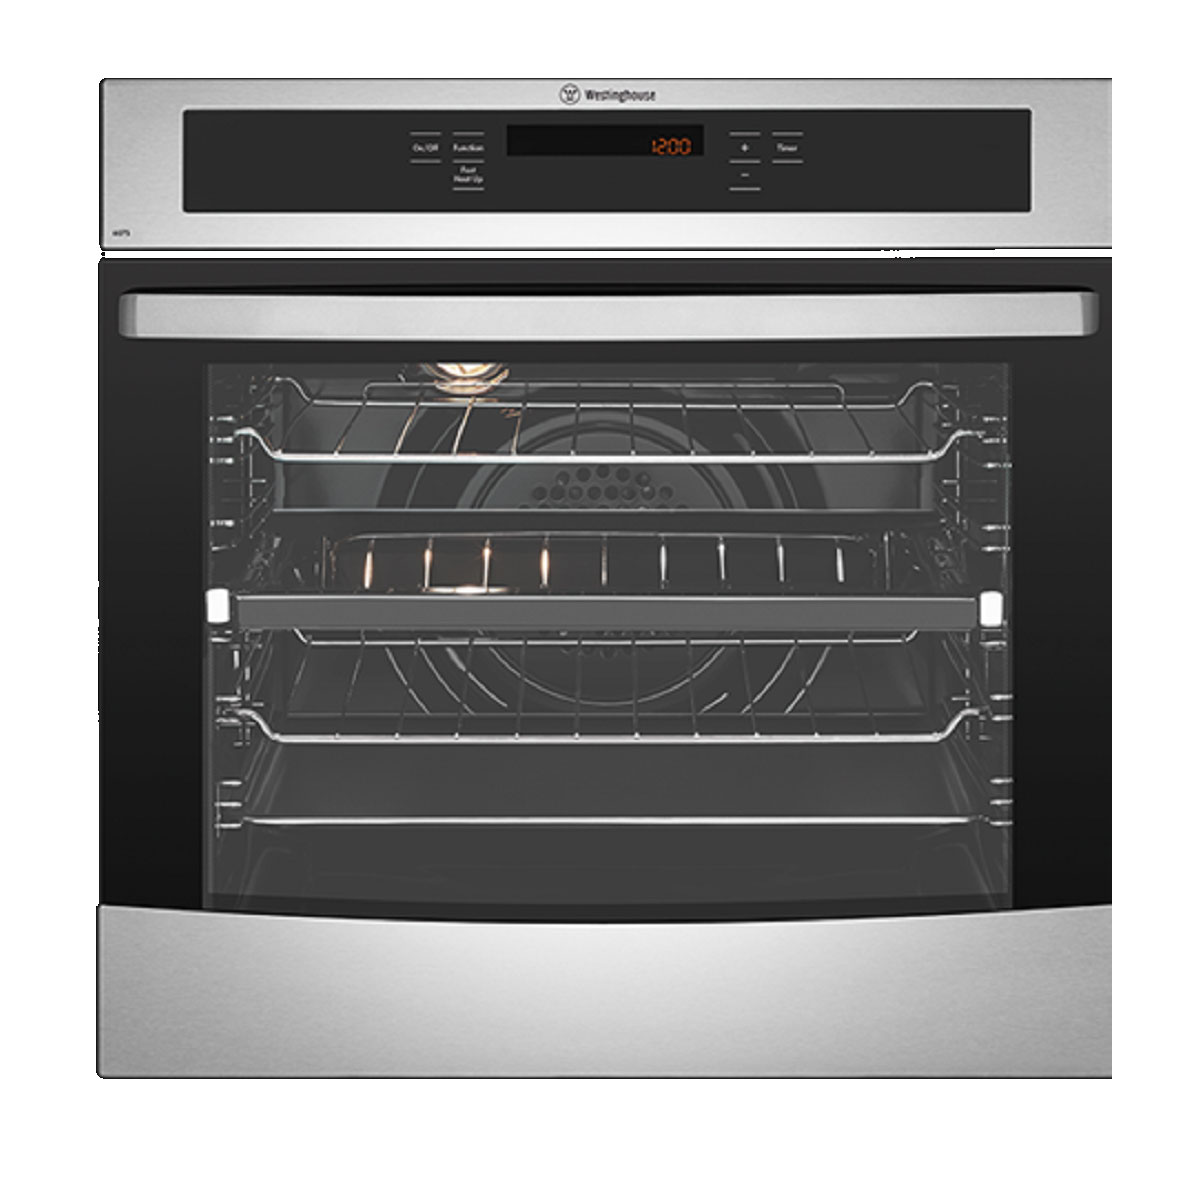 Westinghouse WVE607S Built-In Oven